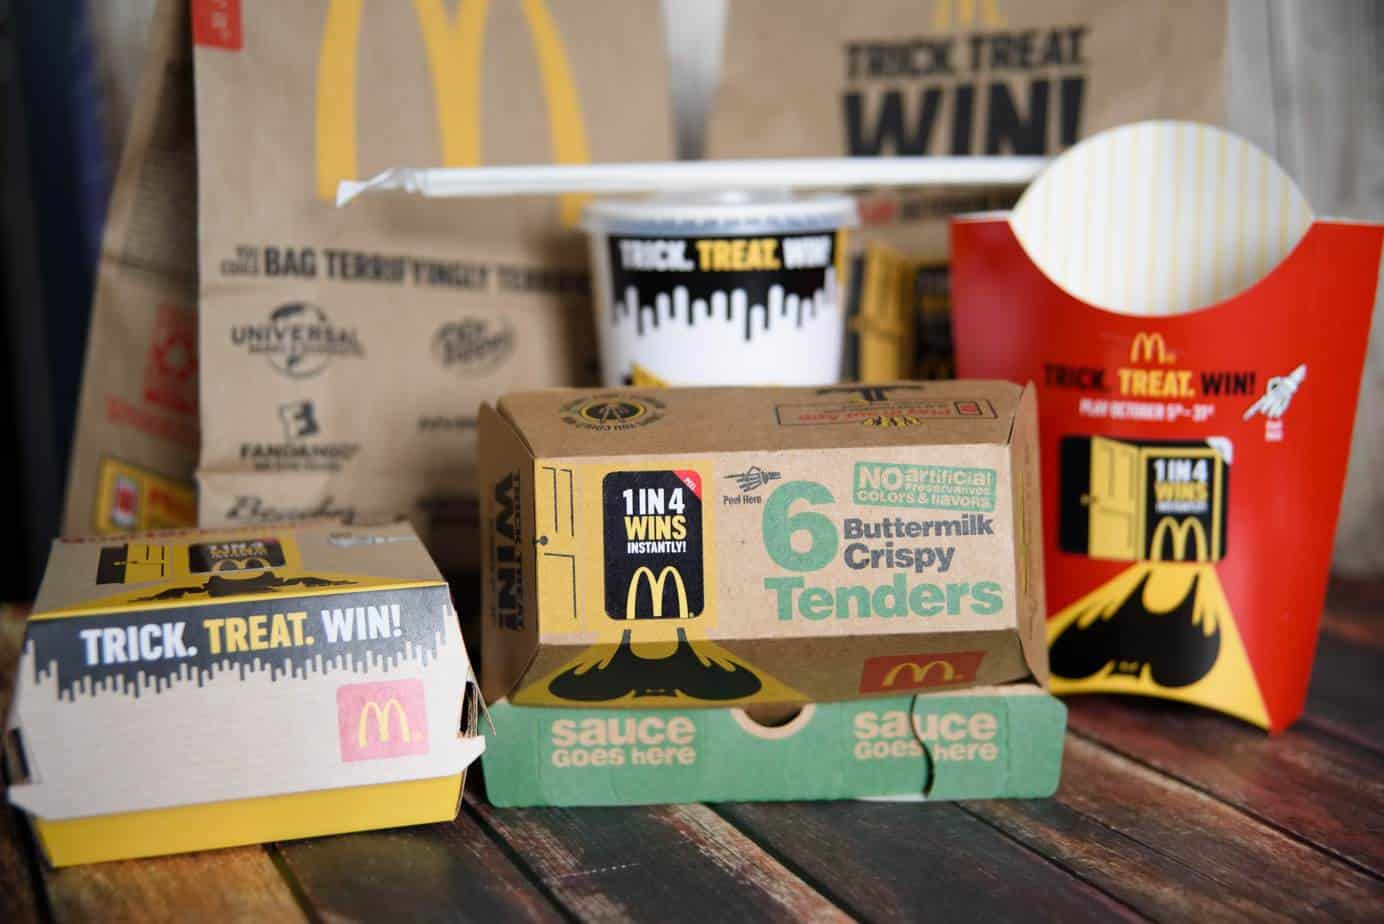 From October 5 - 31, play Trick. Treat. Win! at your local McDonald's to win prizes instantly!